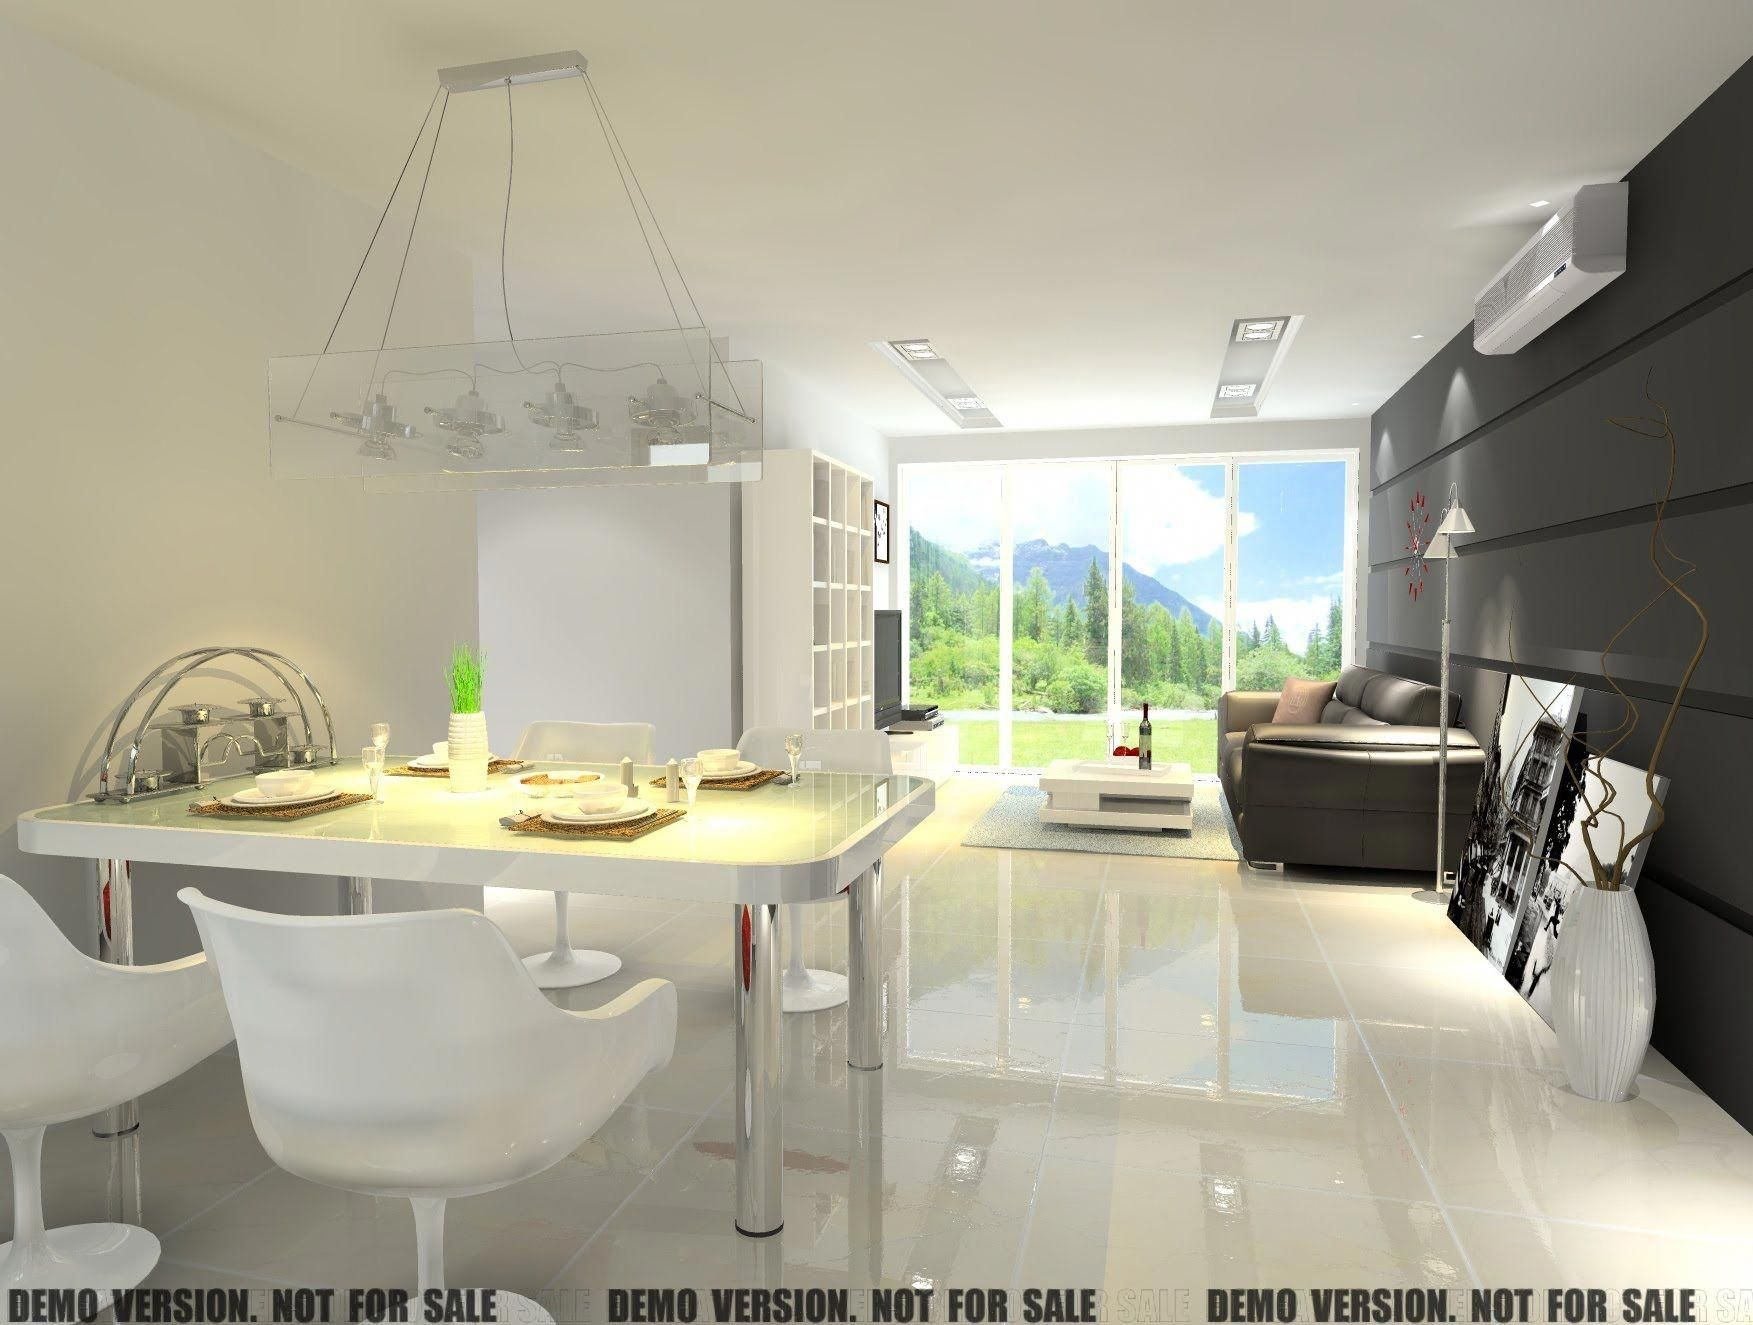 Inericad is an interior design program that could work ideally for my purpose interiordesignprograms also rh pinterest